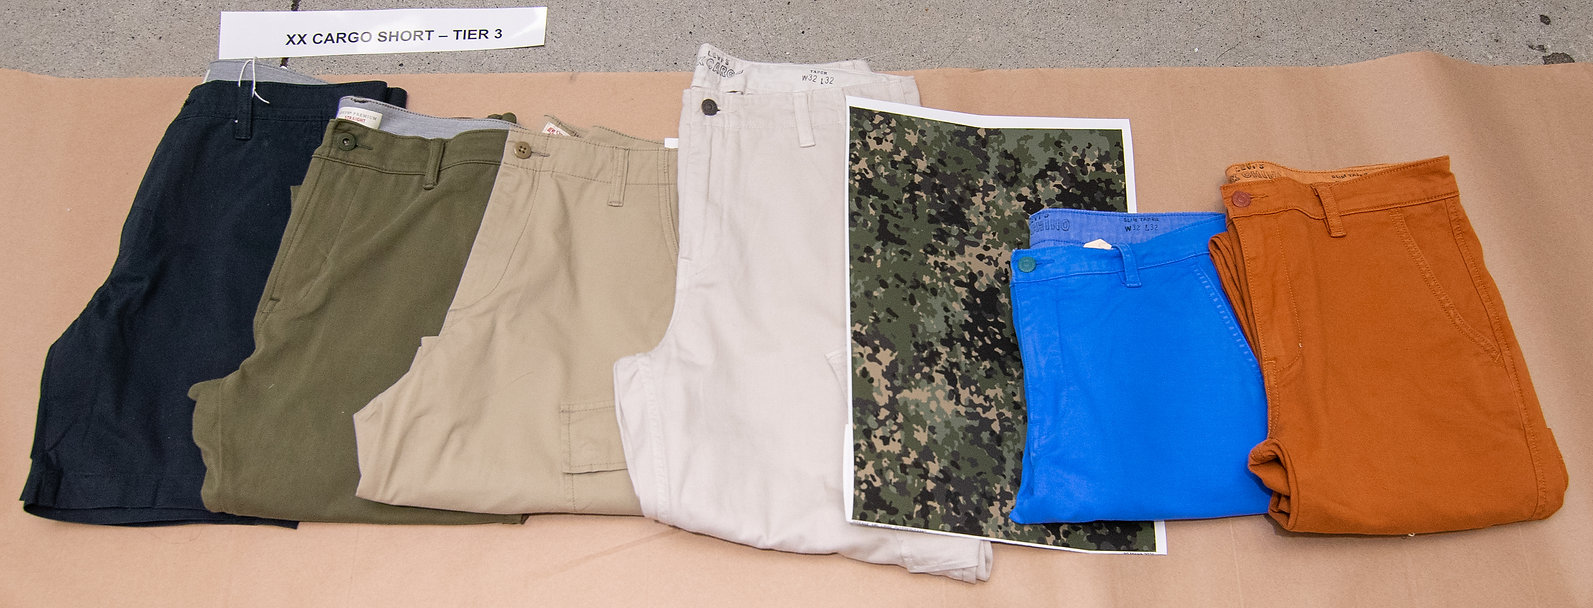 MB_XX CARGO SHORT - TIER 3.jpg